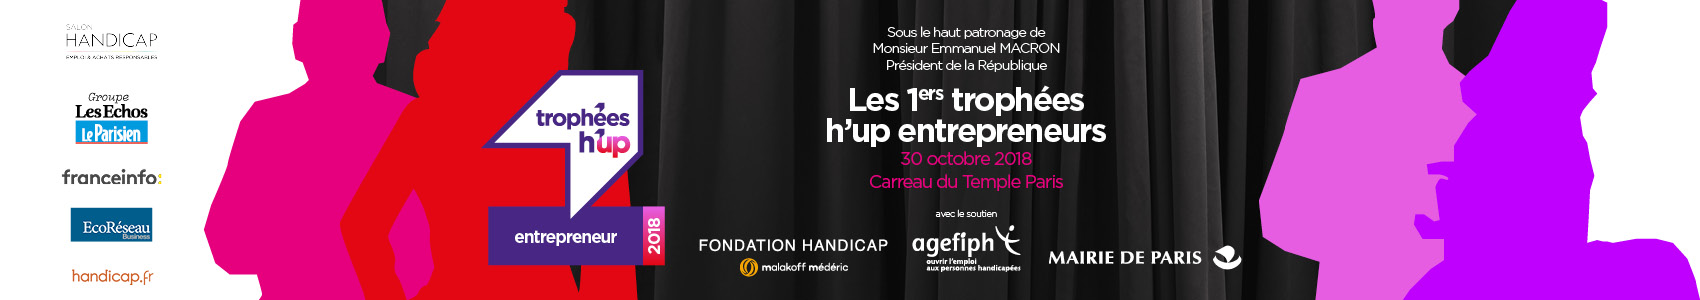 trophées h'up entrepreneurs 30 octobre au Carreau du Temple